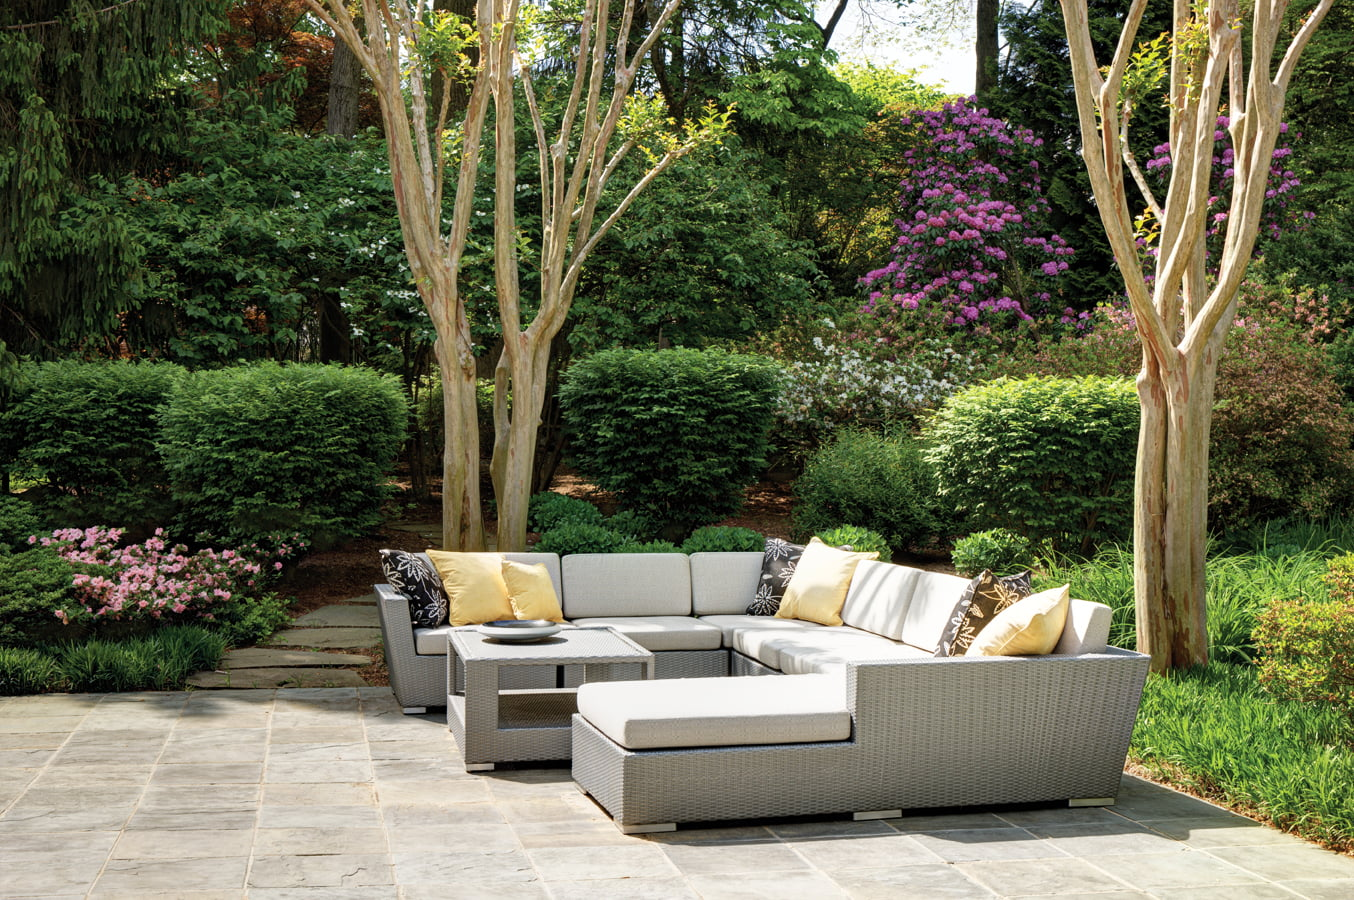 Furniture by Neoteric Luxury adorns the patio.